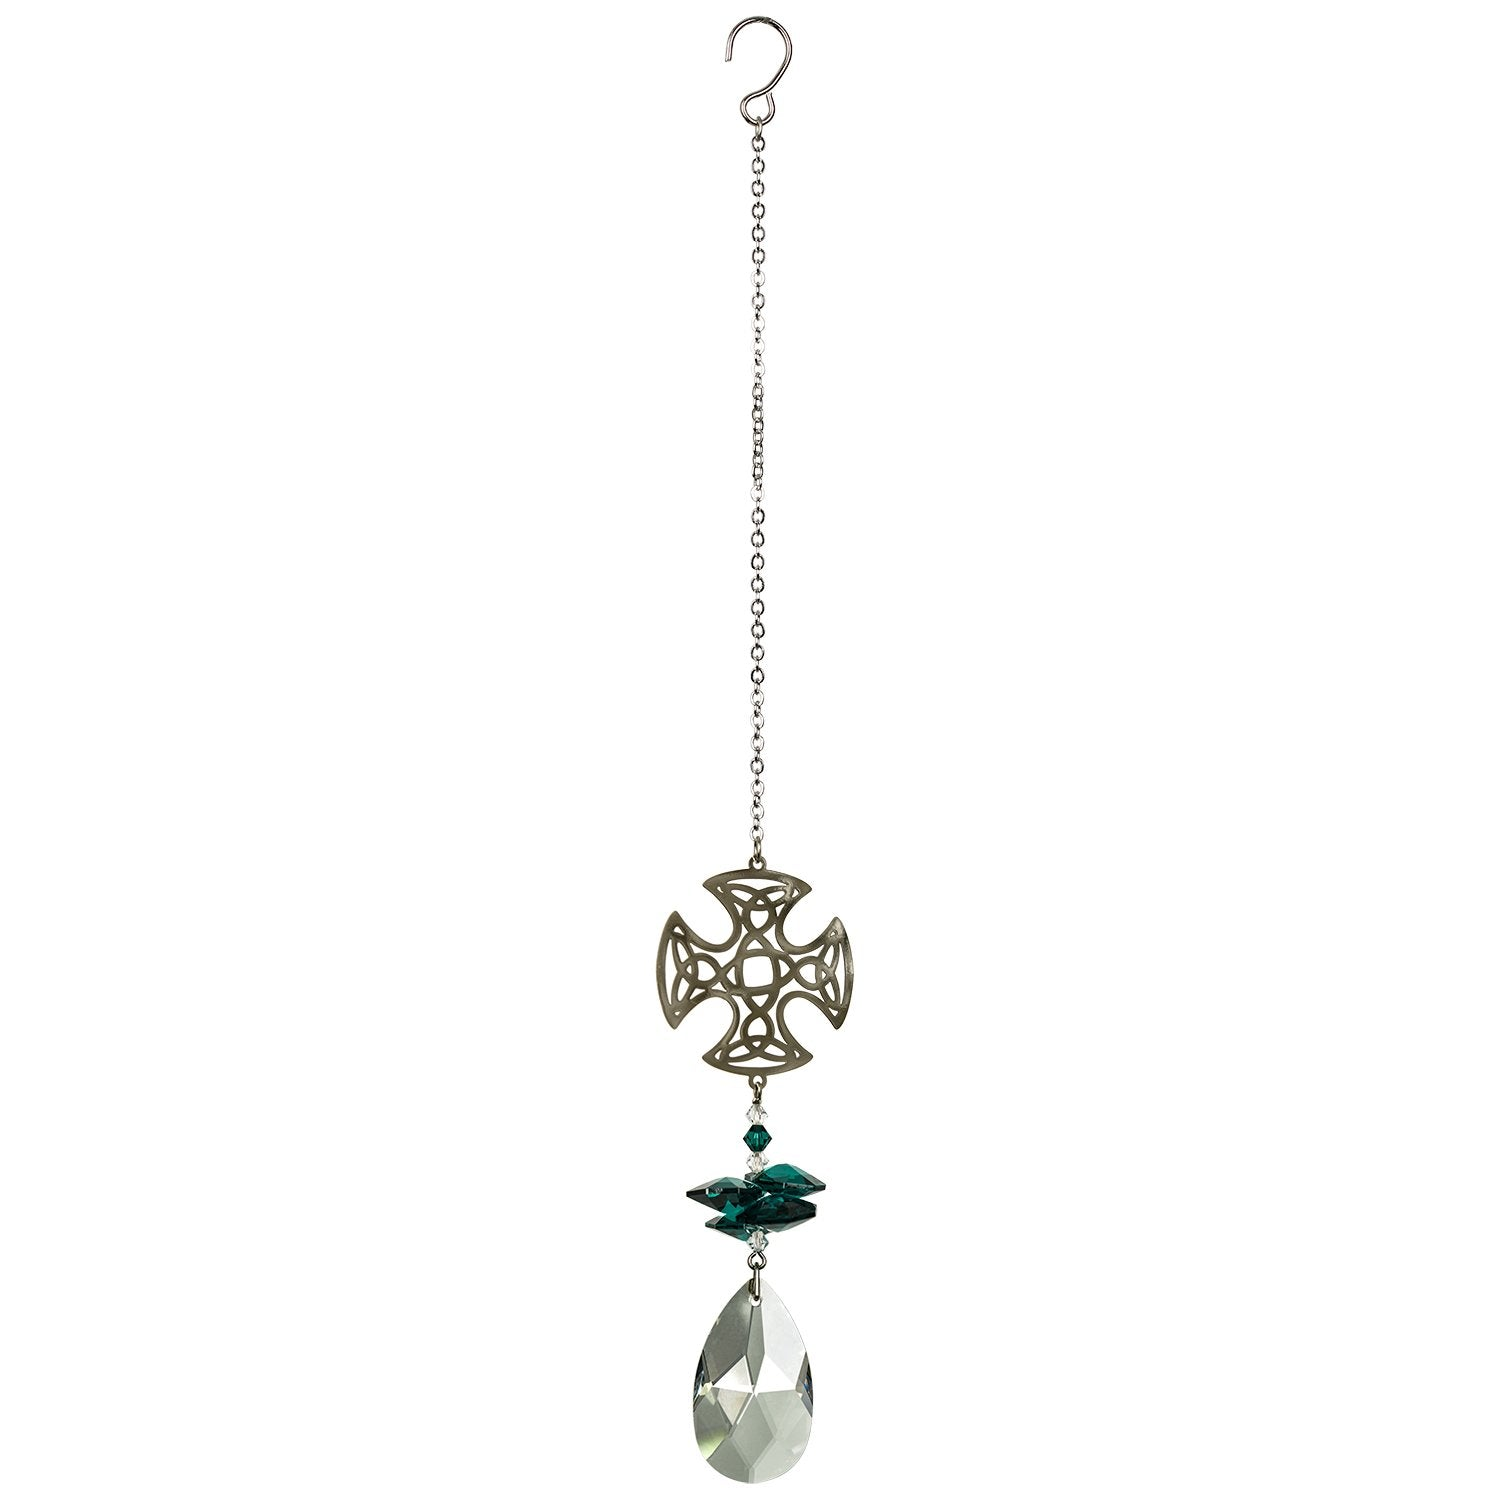 Crystal Fantasy Suncatcher - Celtic full product image